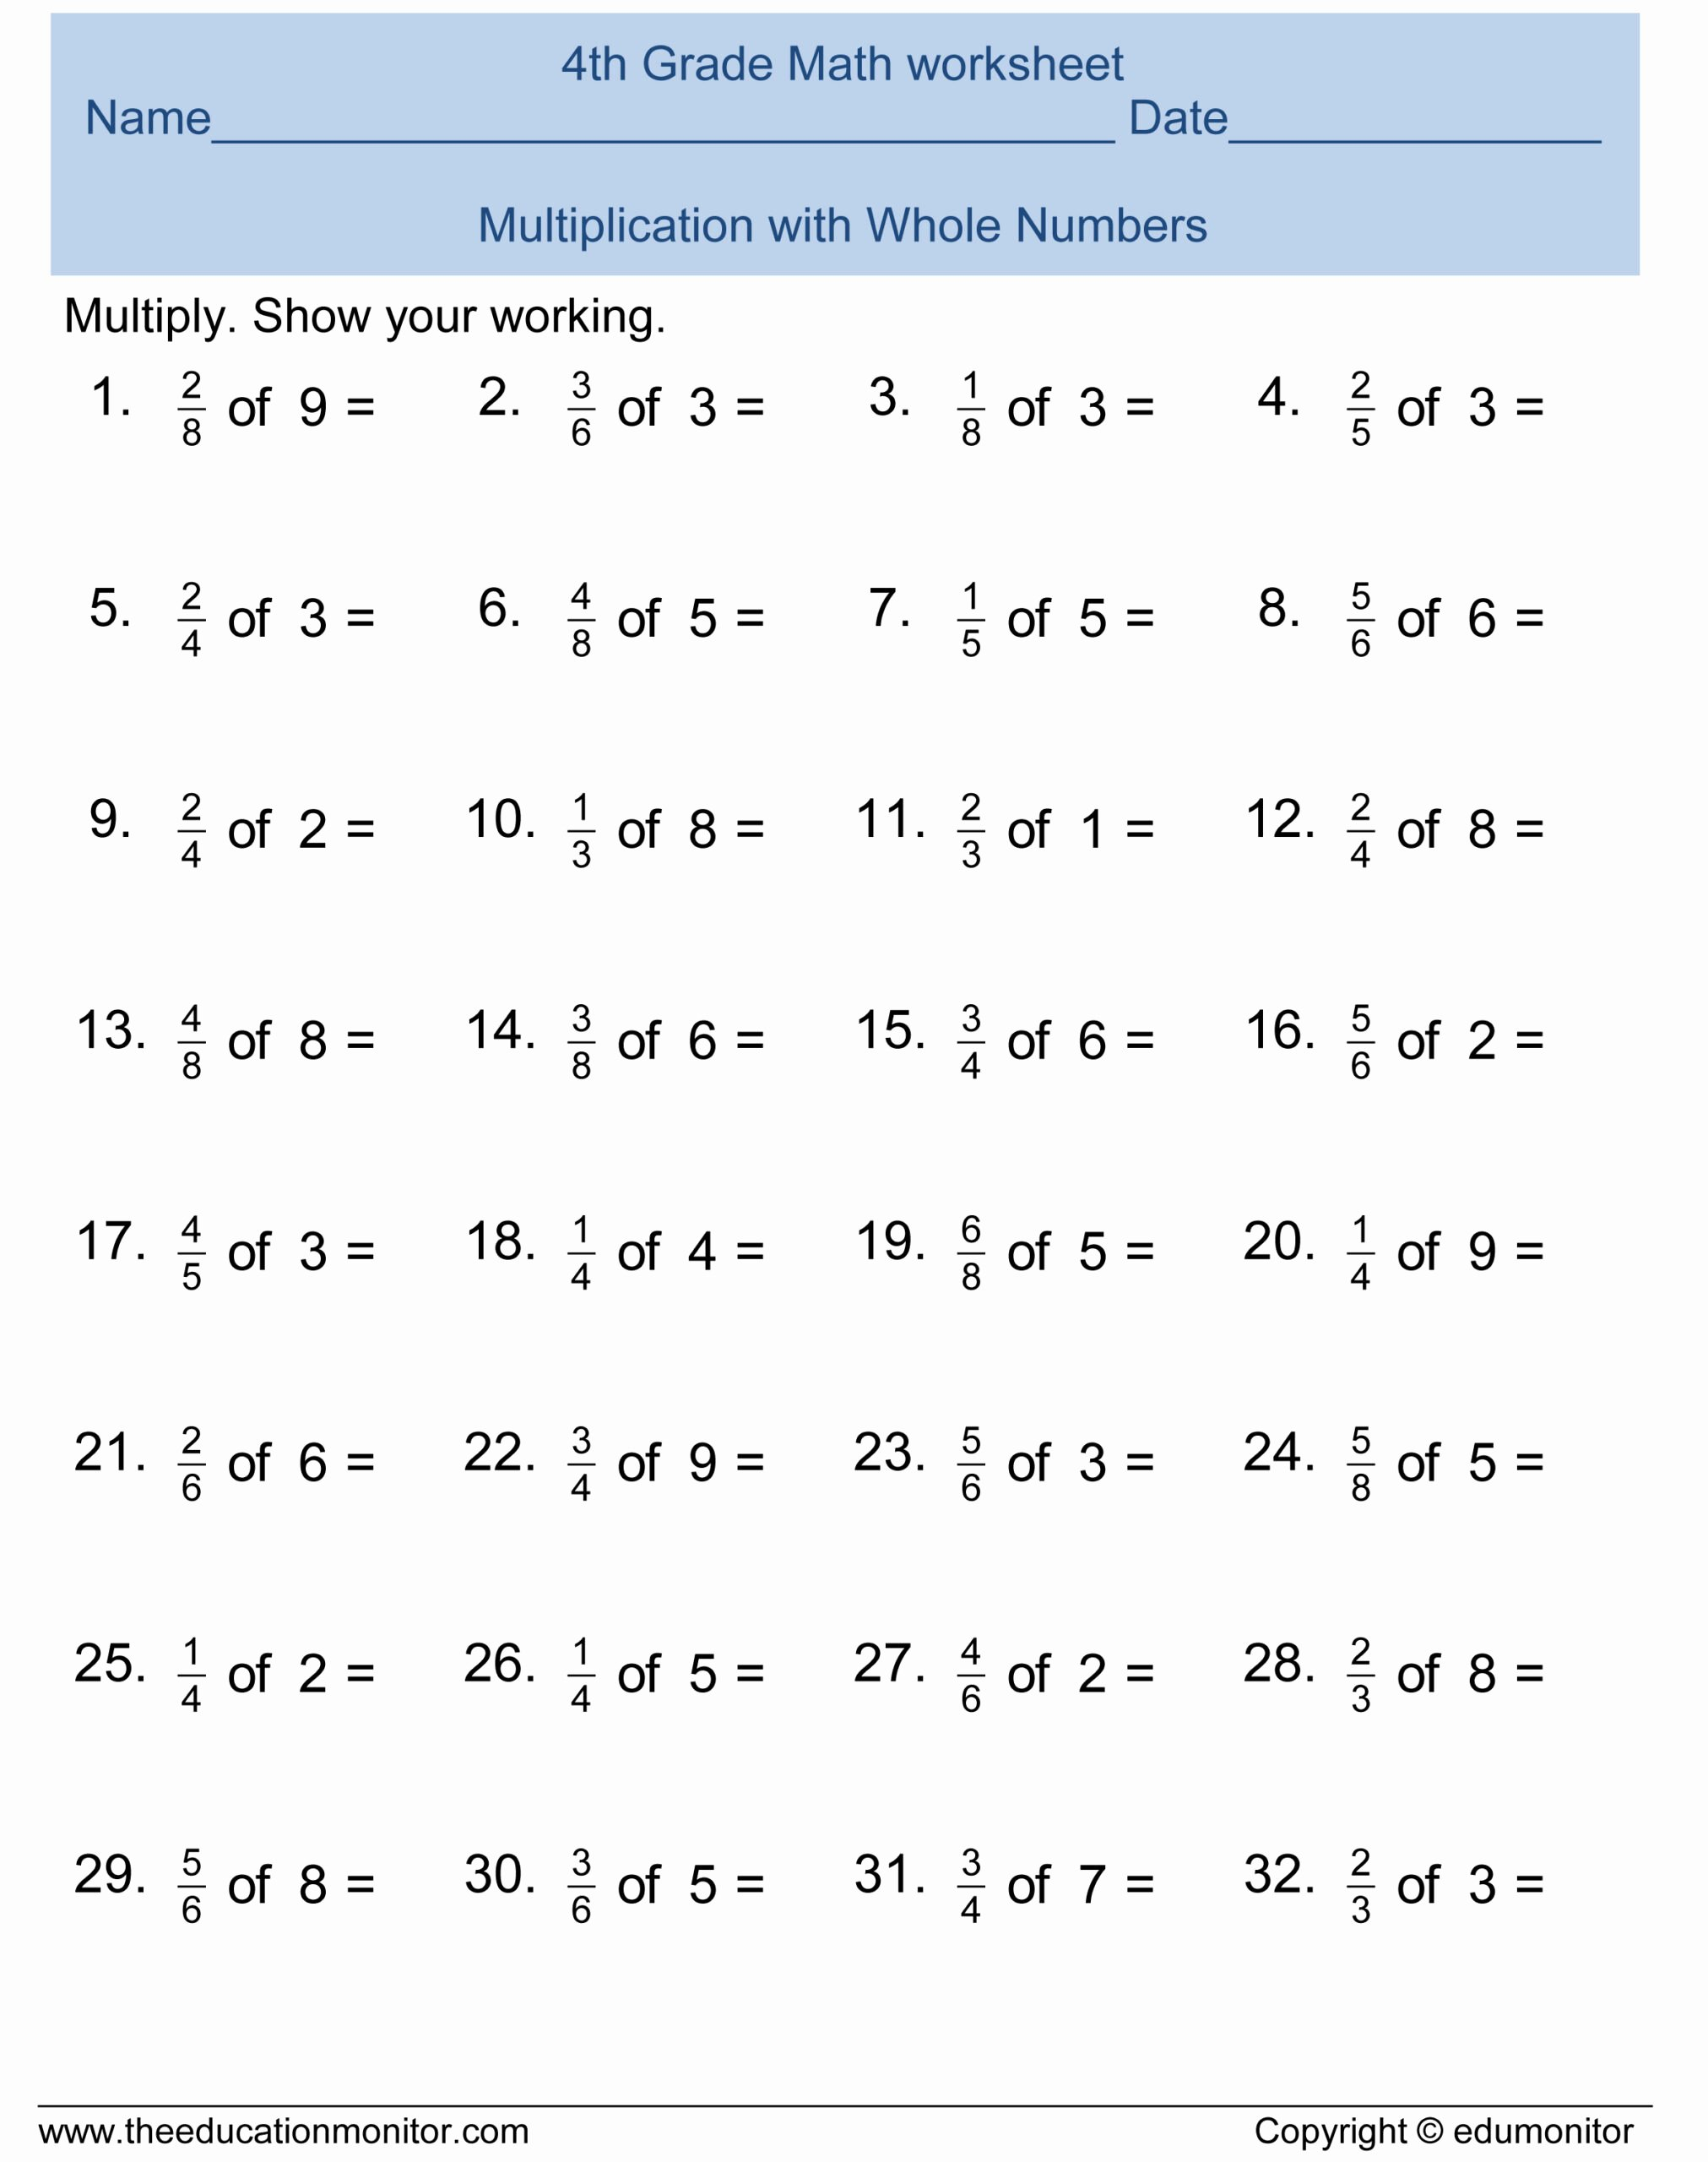 Printable 4th Grade Multiplication Worksheets Fresh Free 4th Grade Fractions Math Worksheets and Printables